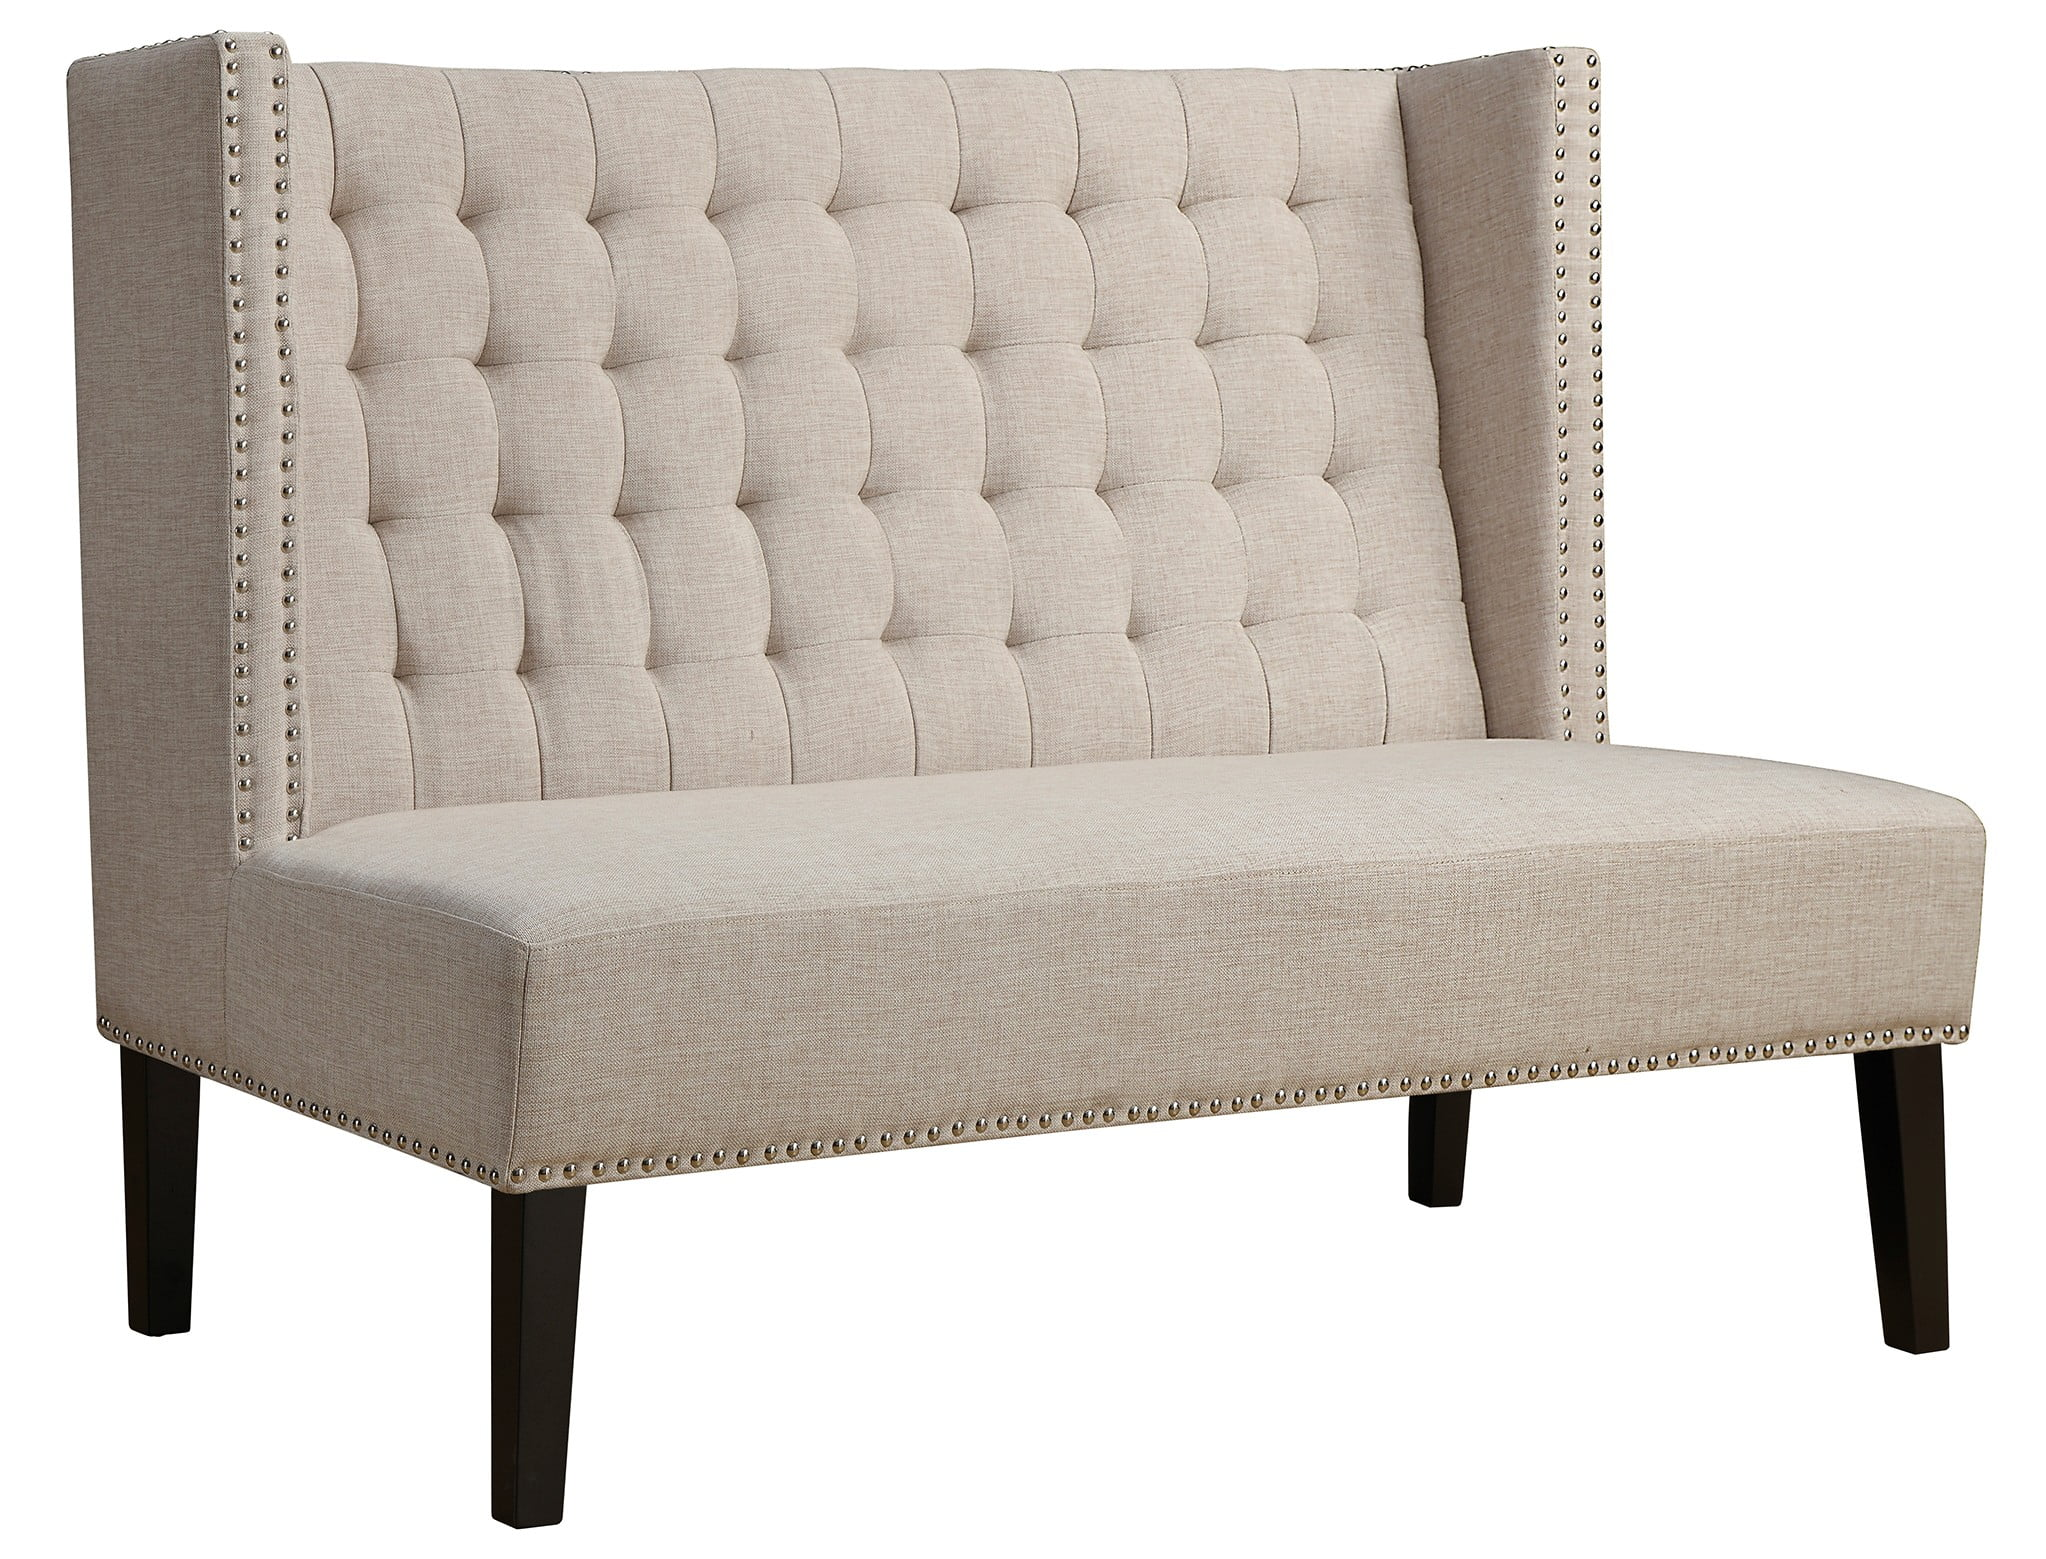 Halifax Beige Linen Banquette Bench From Tov Tov 63114 Beige Coleman Furniture